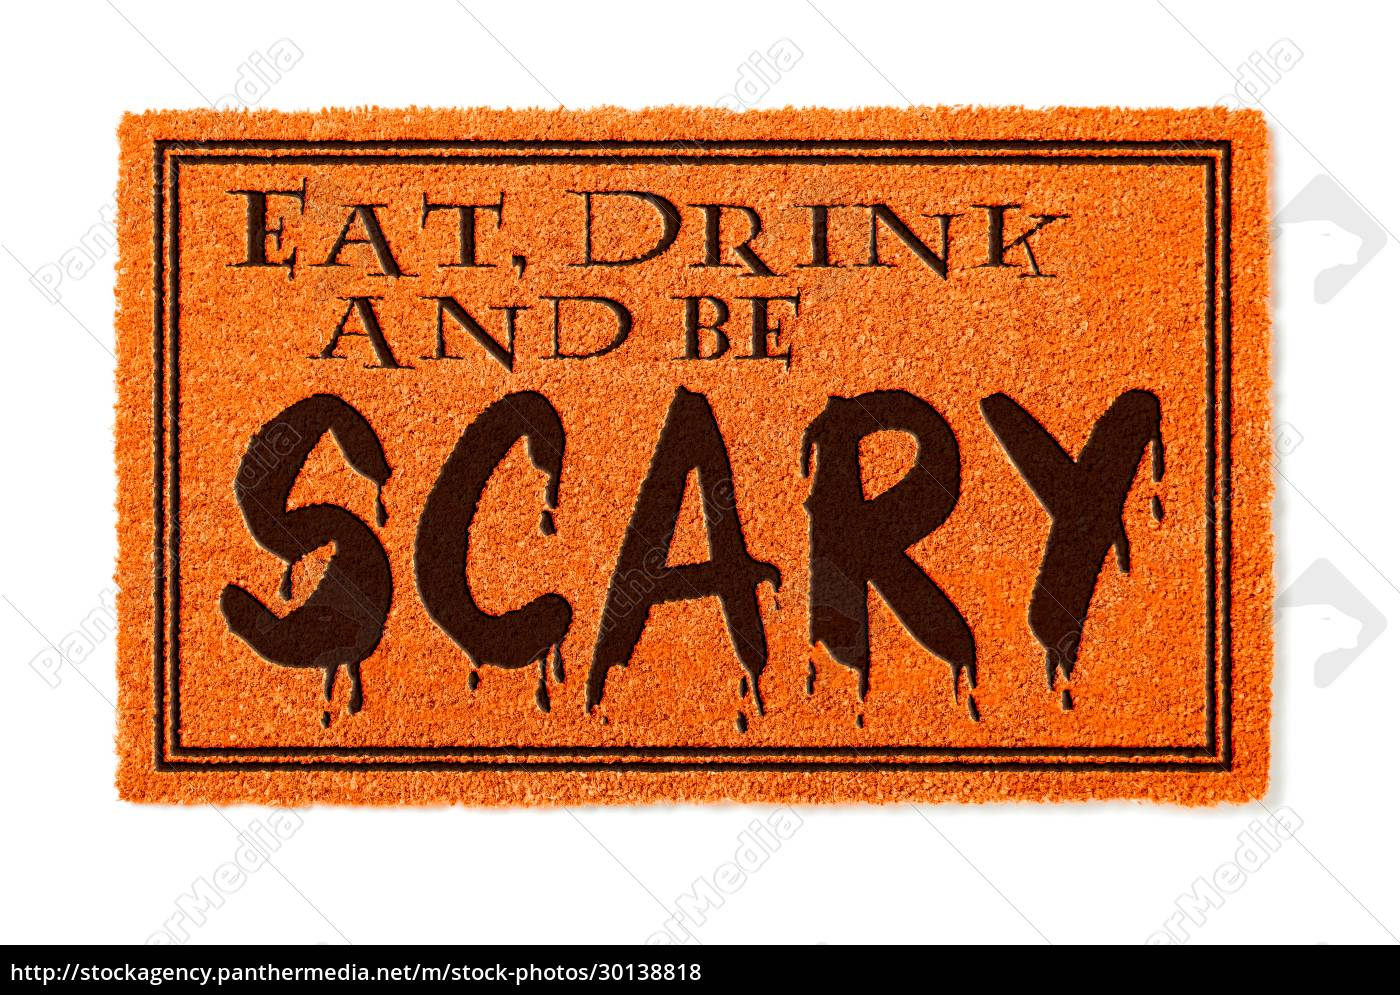 eat, , drink, and, be, scary, halloween - 30138818